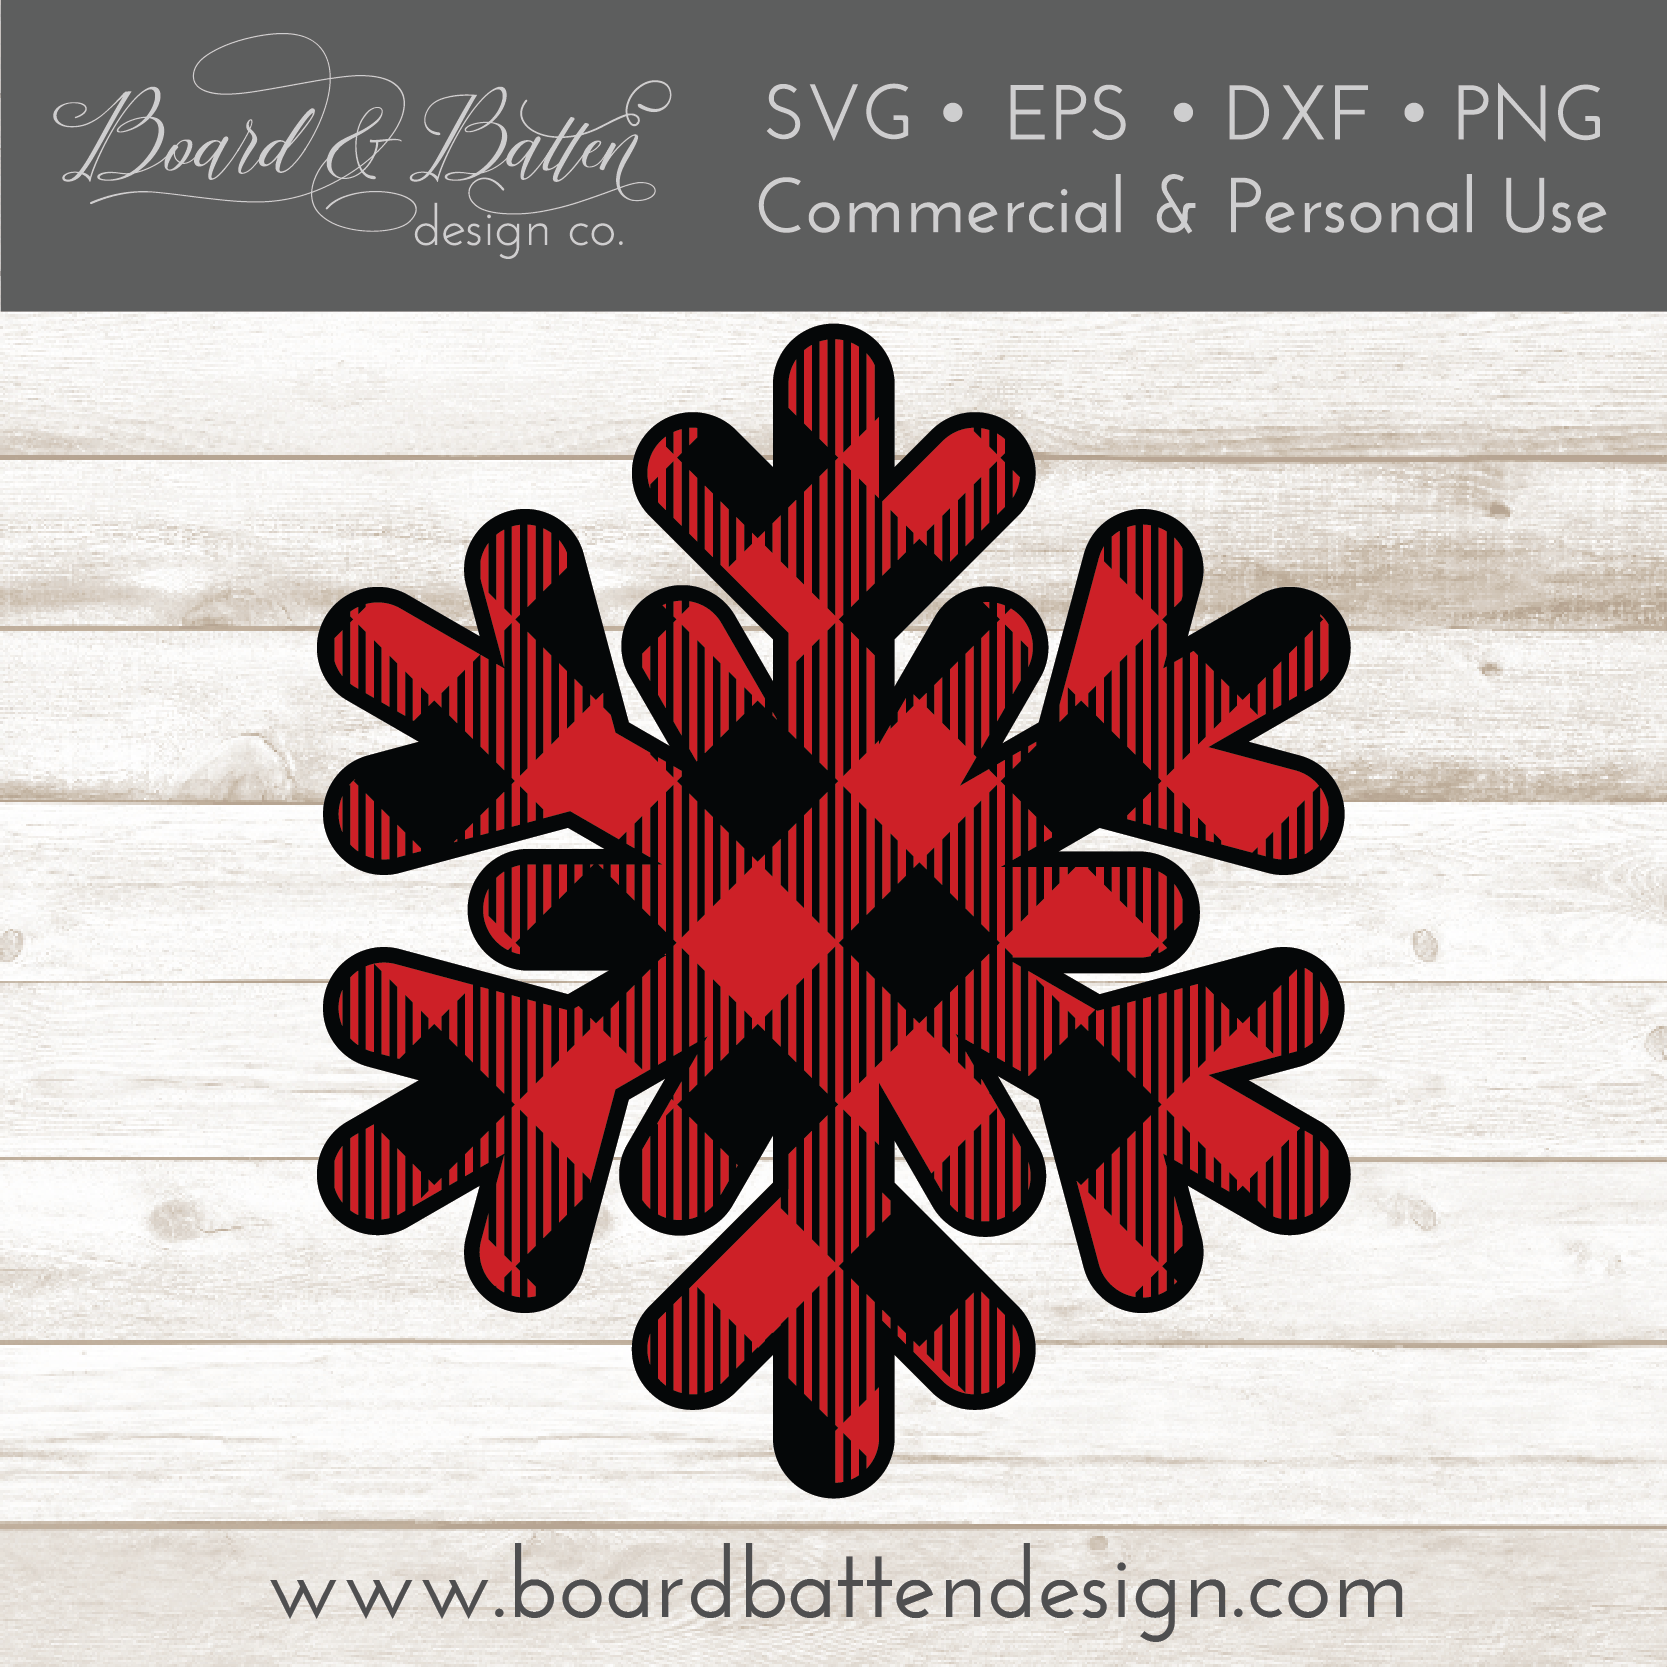 Buffalo Plaid Snowflake Shape Layered SVG - Commercial Use SVG Files